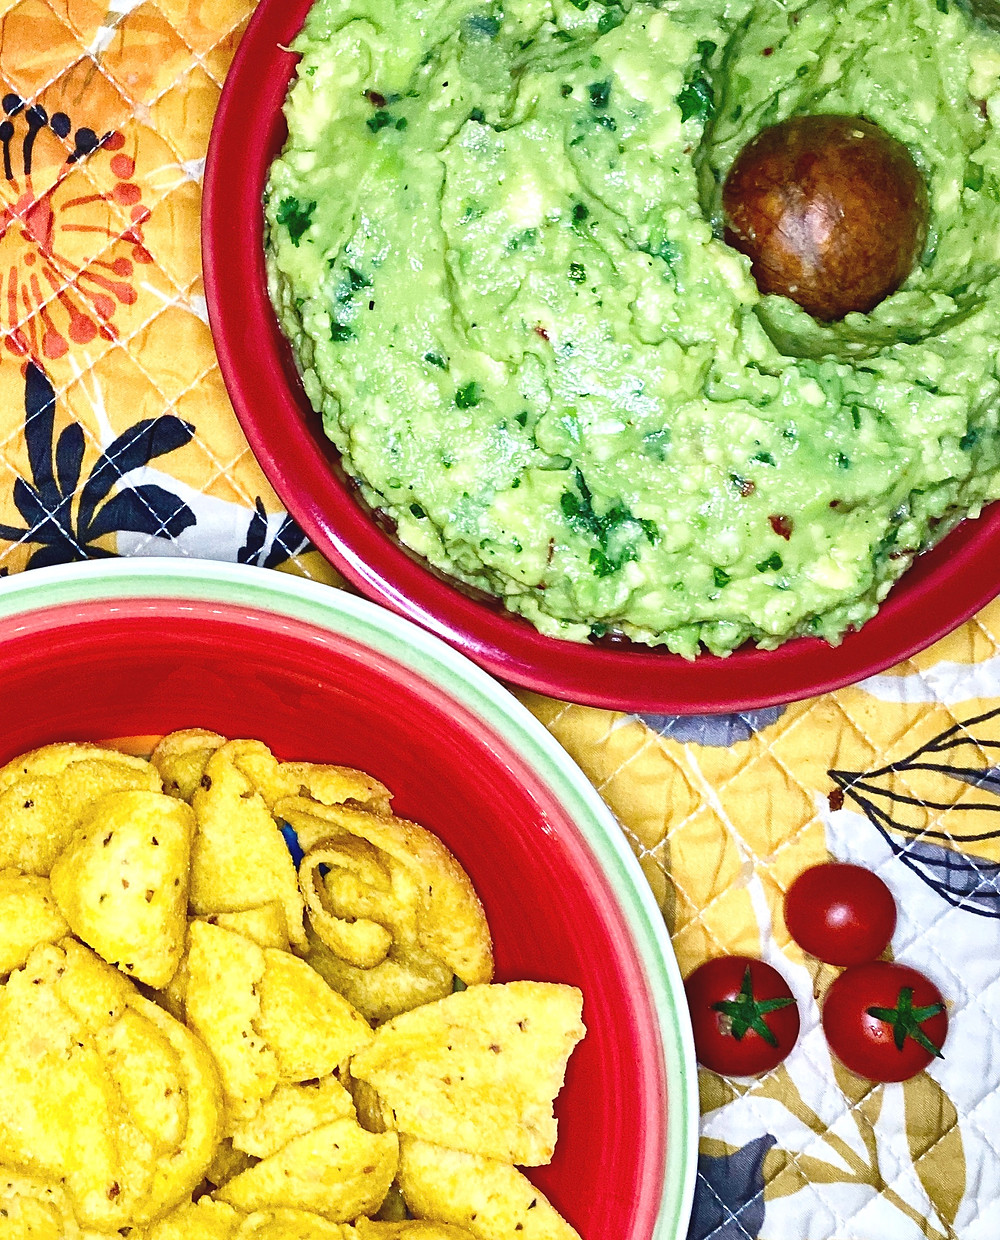 A bowl of Guacamole with it's pit and a bowl of Frito Lay's